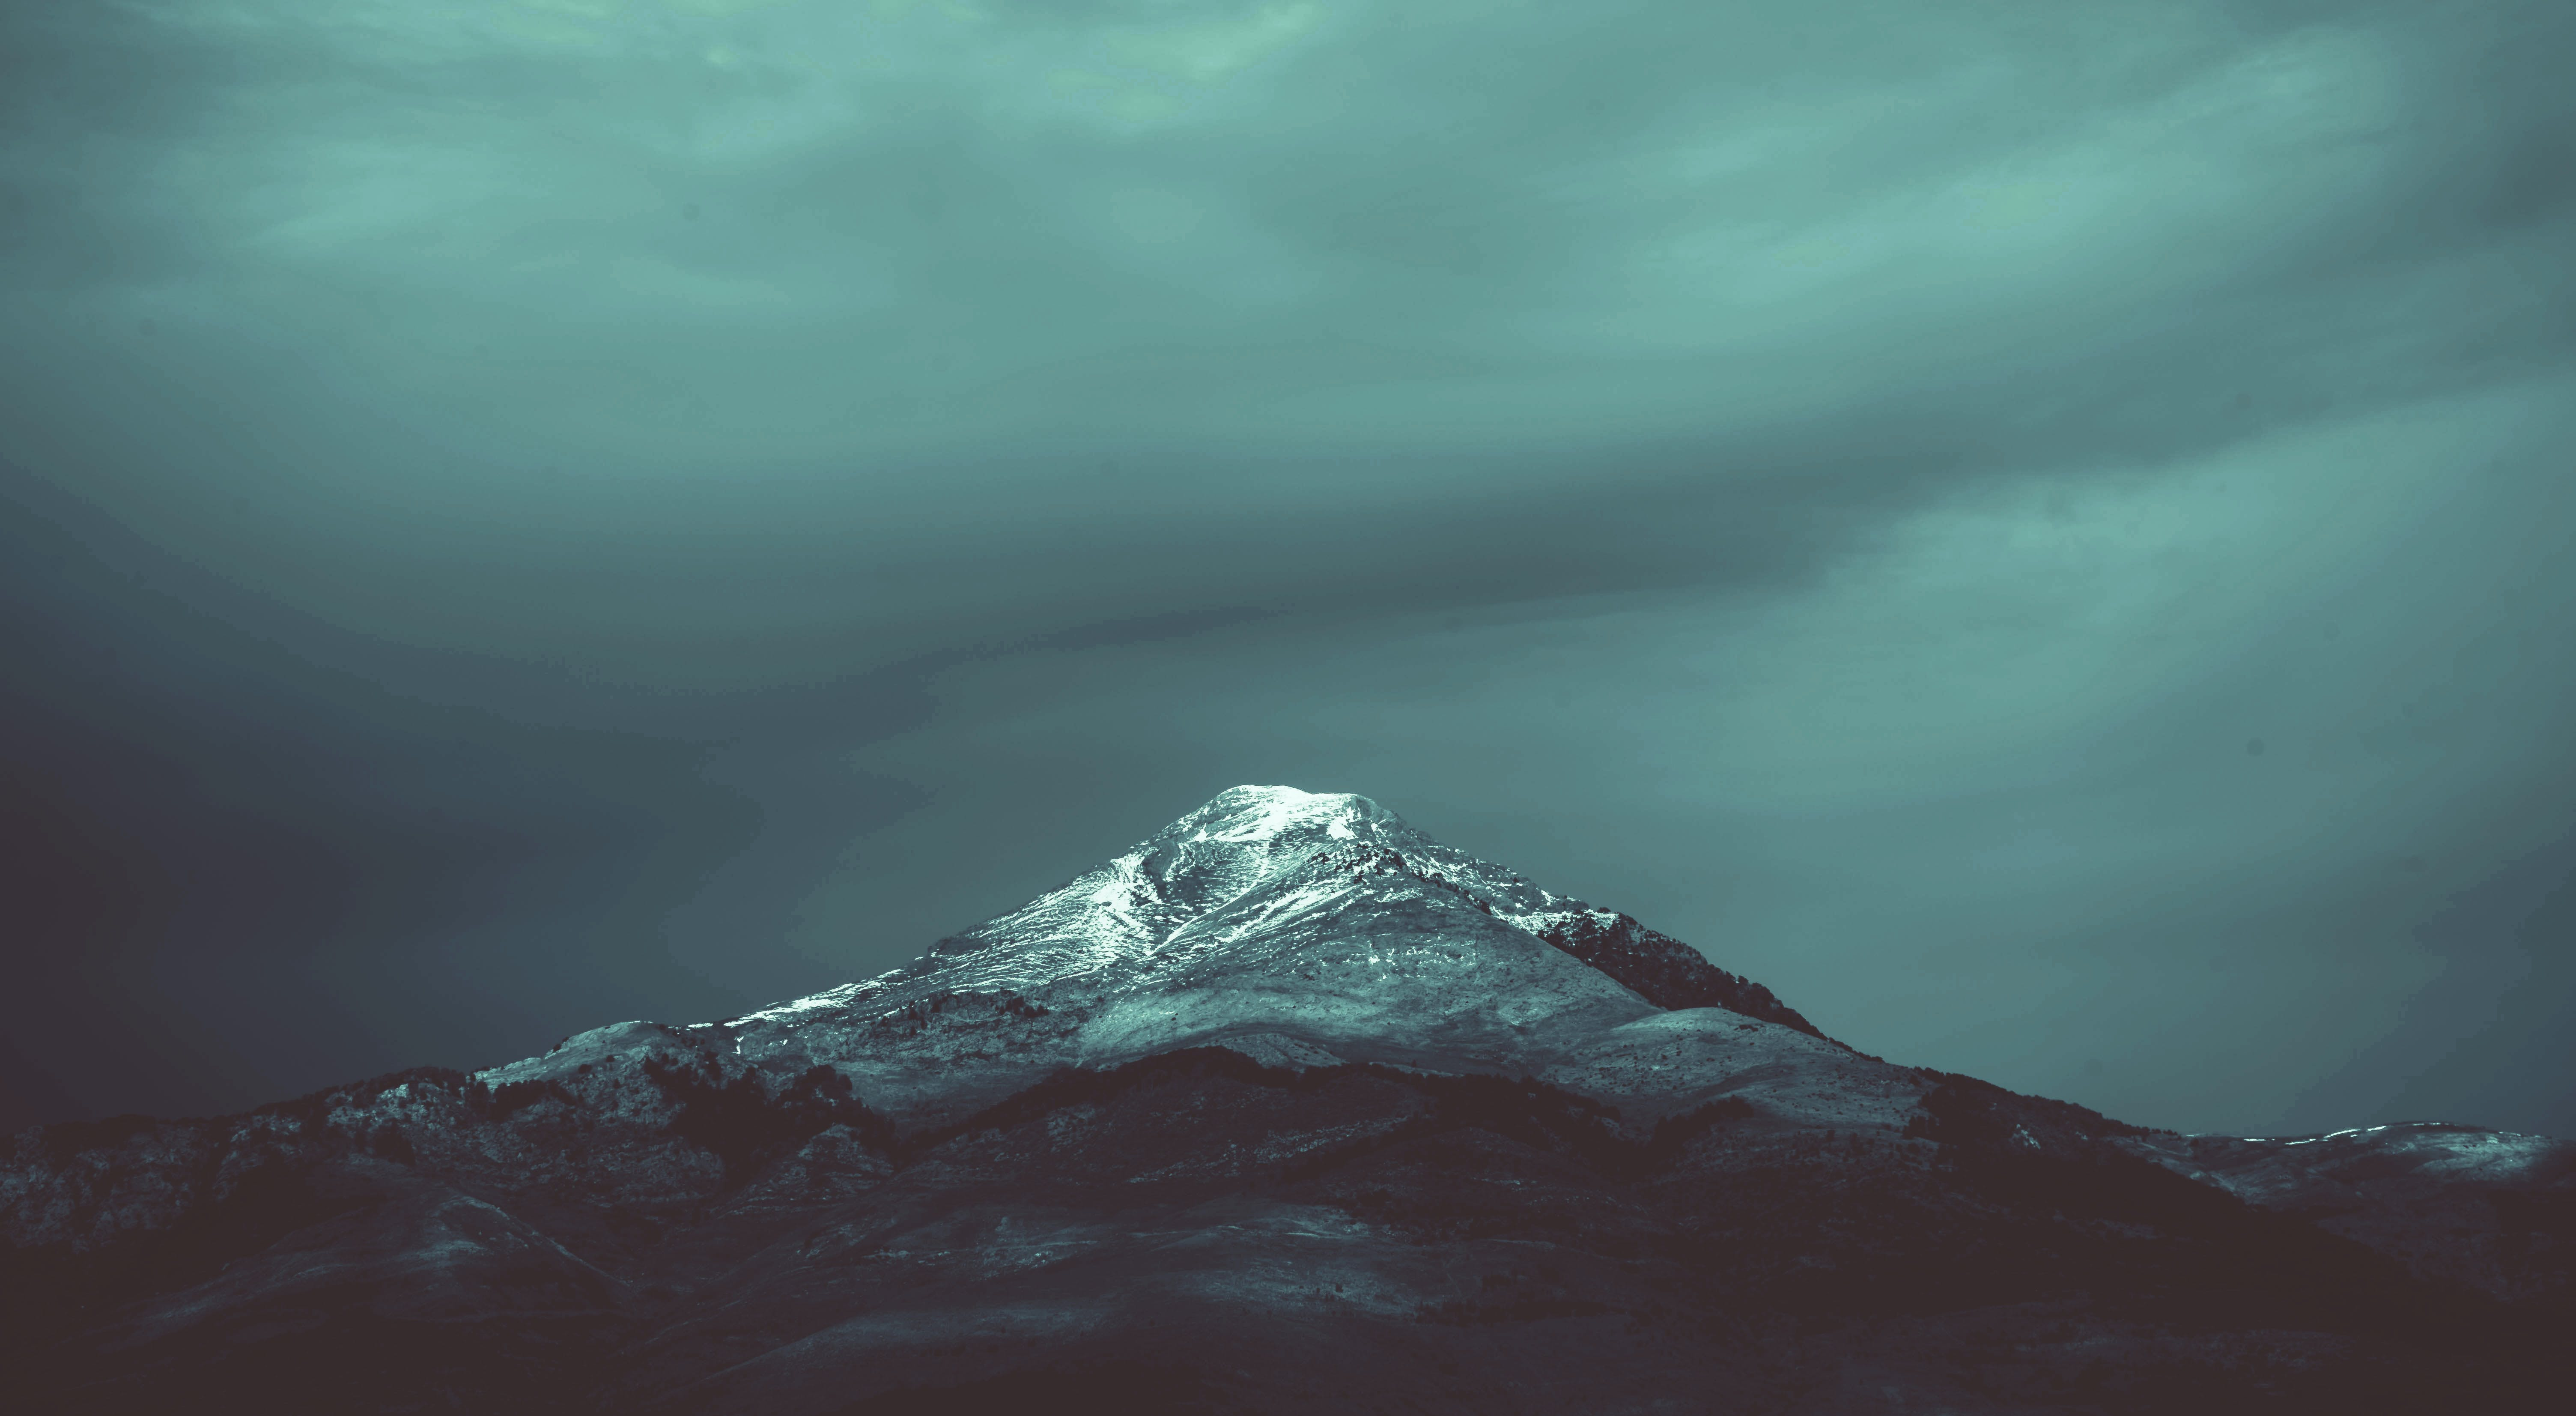 Black and Teal Mountain